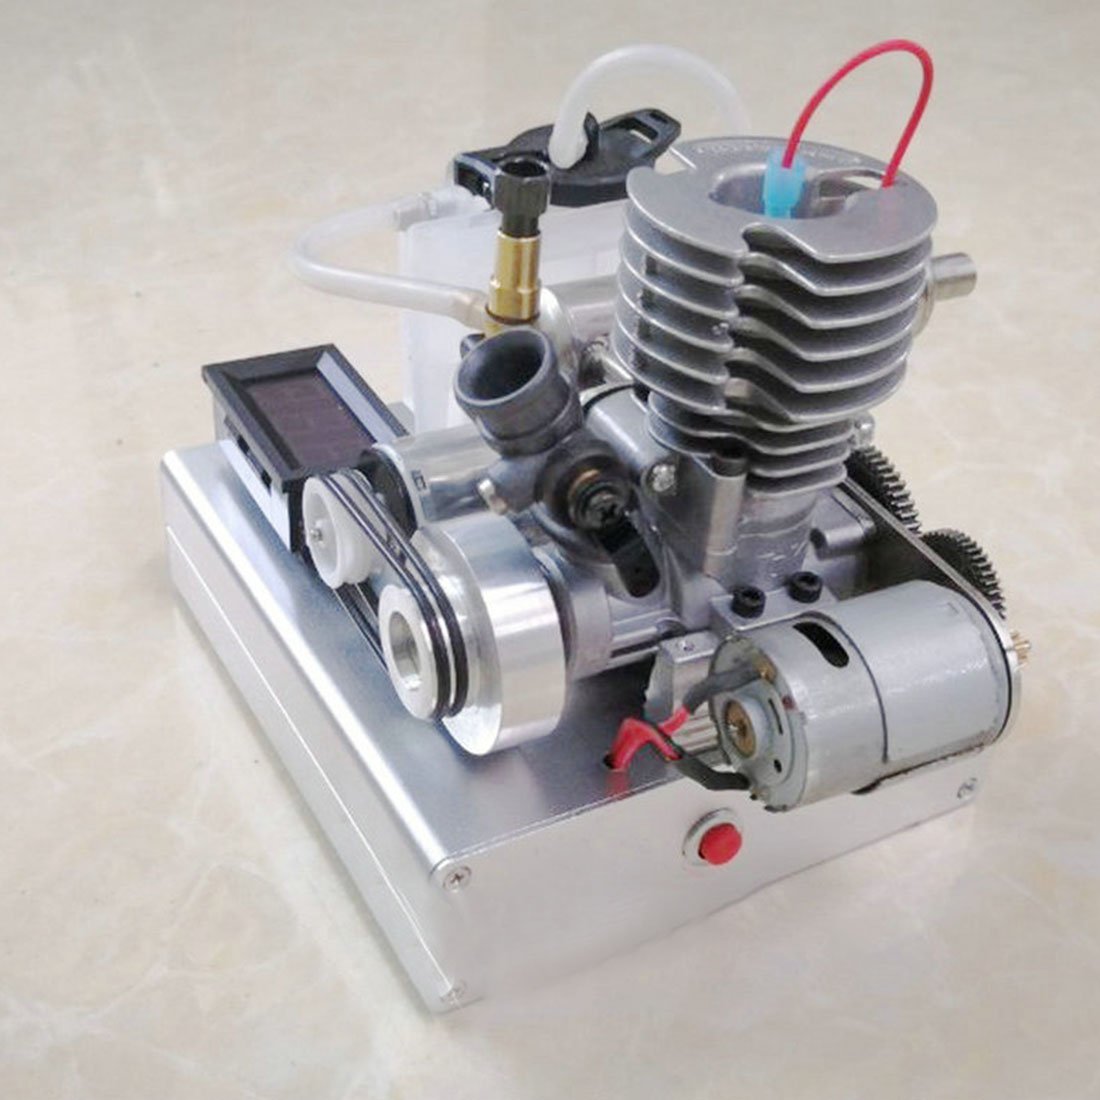 One-Button Start Methanol Low Pressure Engine Level 15 Methanol Engine (Finished Product)Model Educational Toy Gift For Children